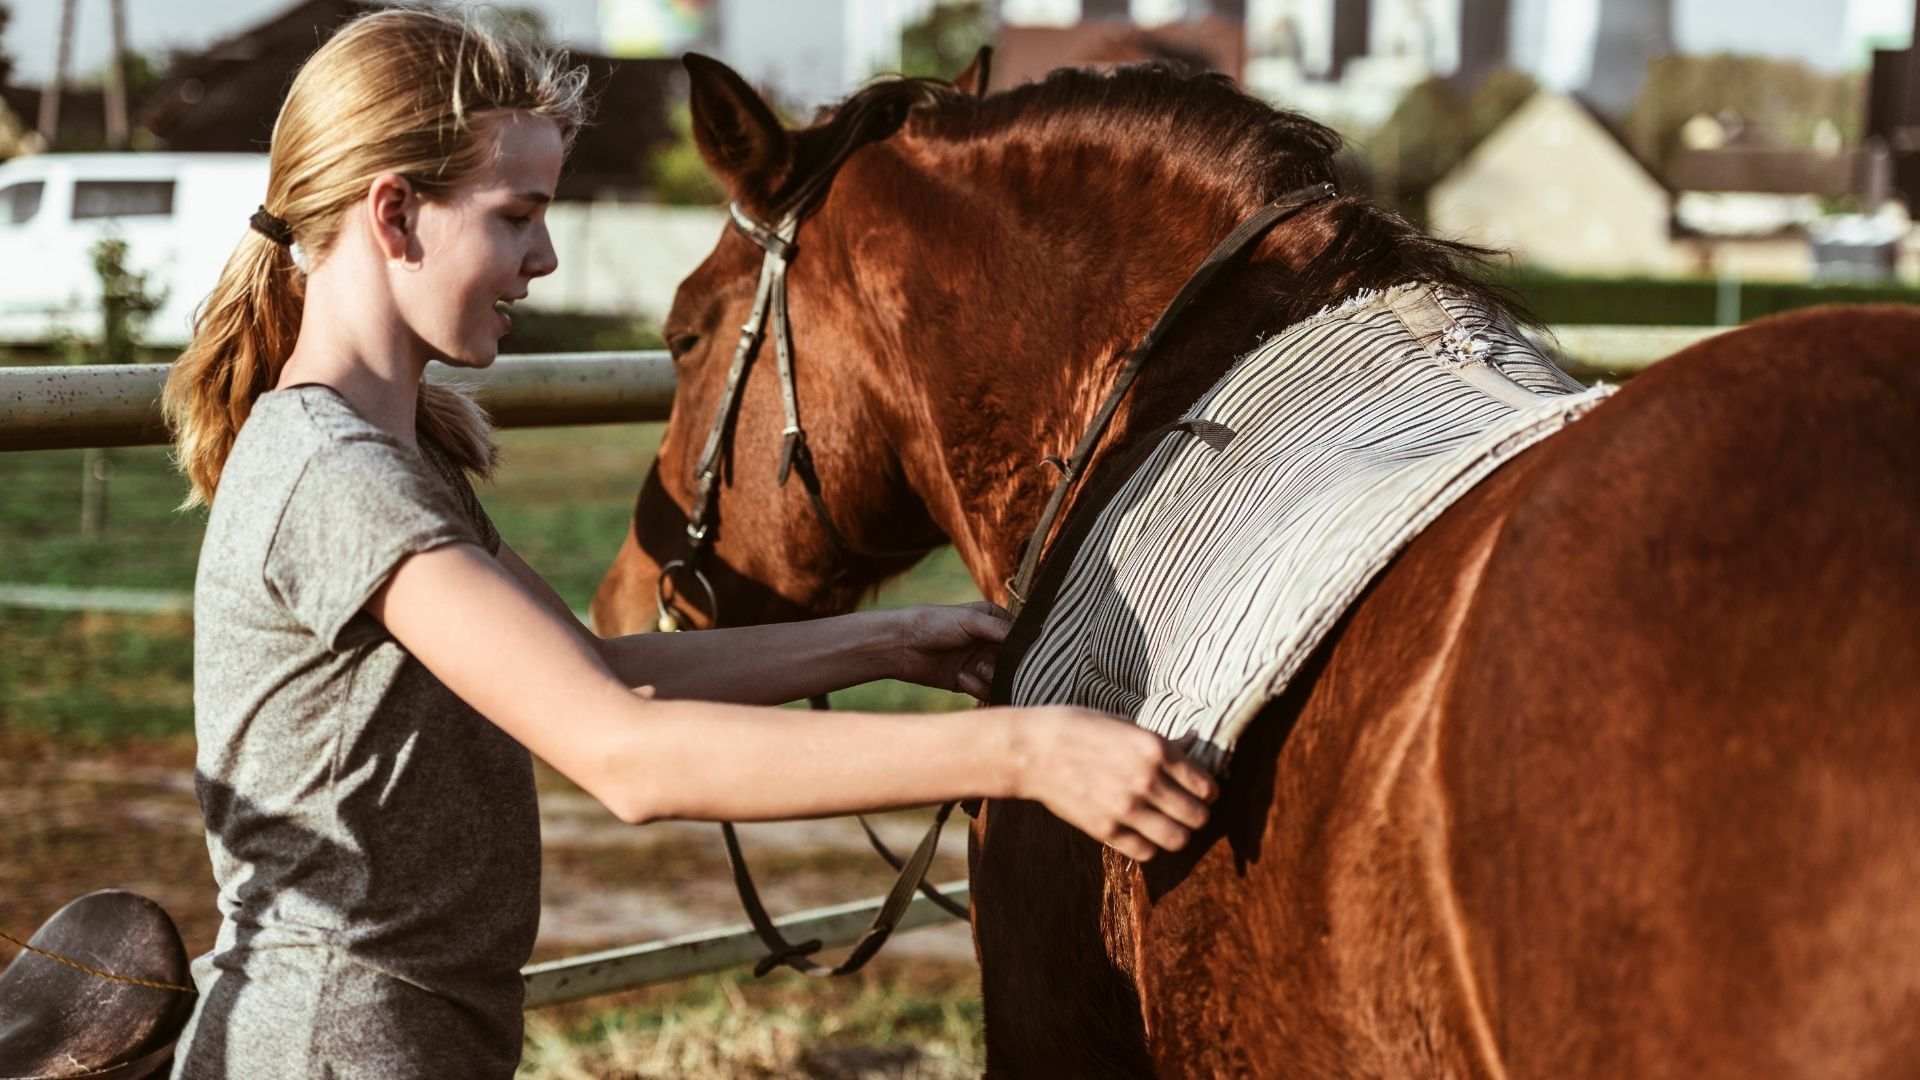 Picture of a girl putting a saddle pad on a horse.